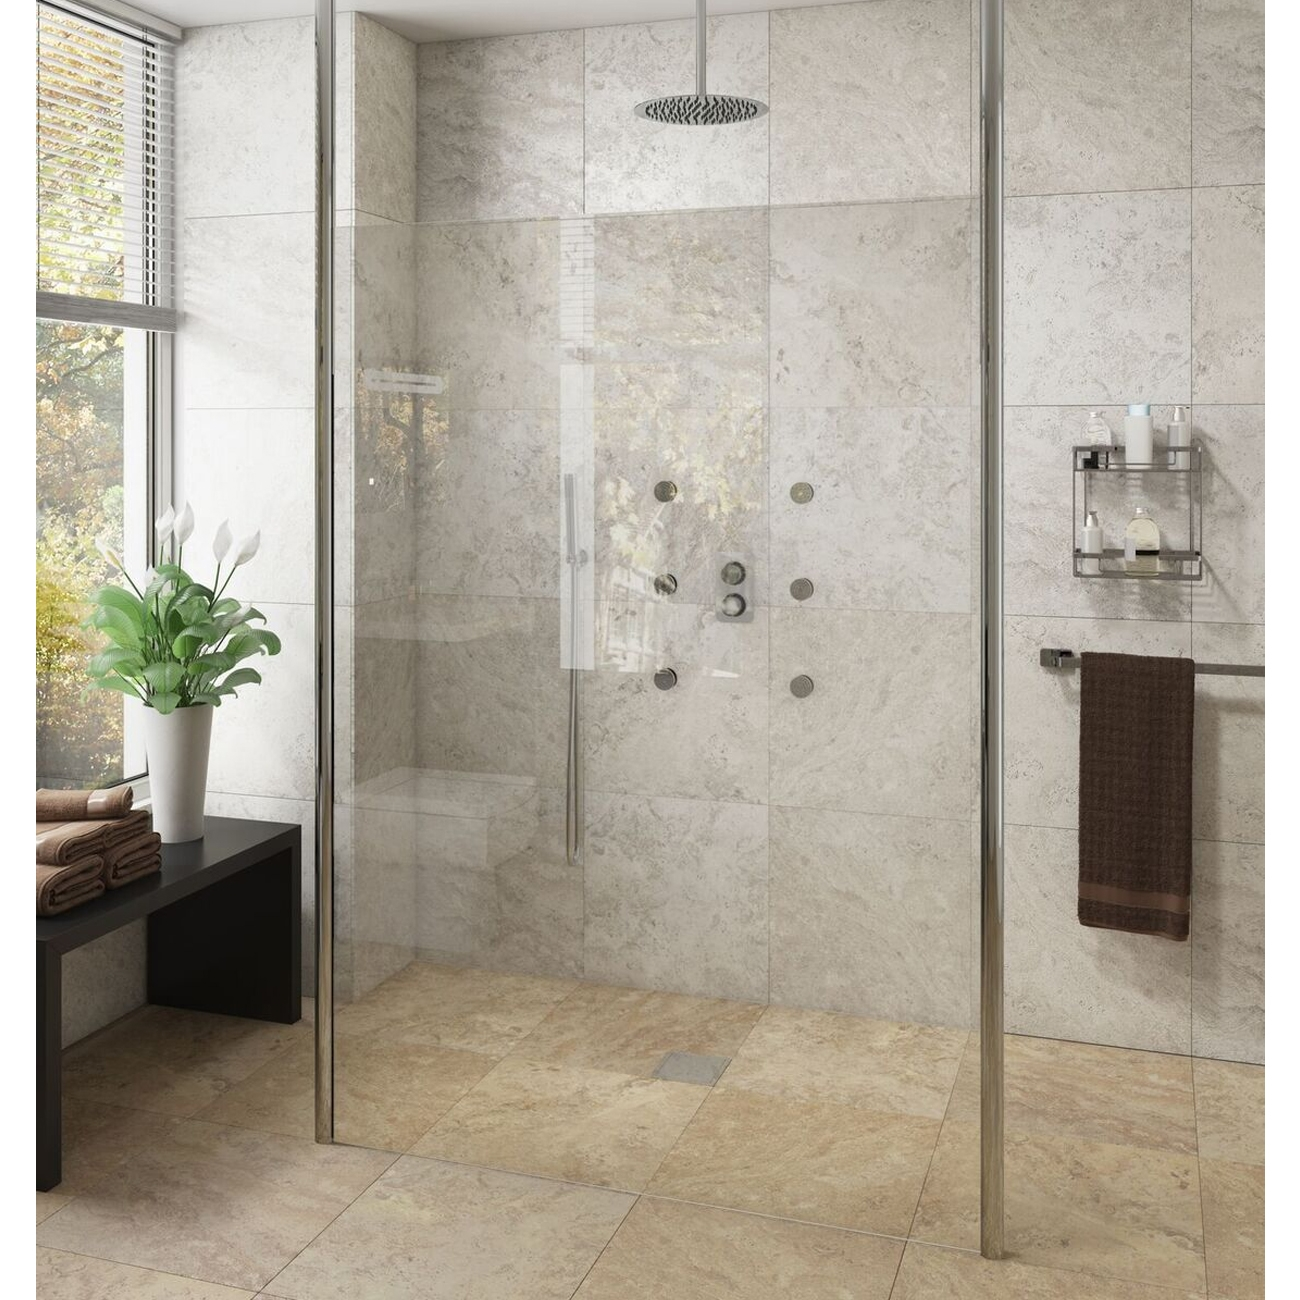 Cali Lana Free Standing Wet Room Screen 2000mm High x 1200mm Wide - 10mm Glass Only